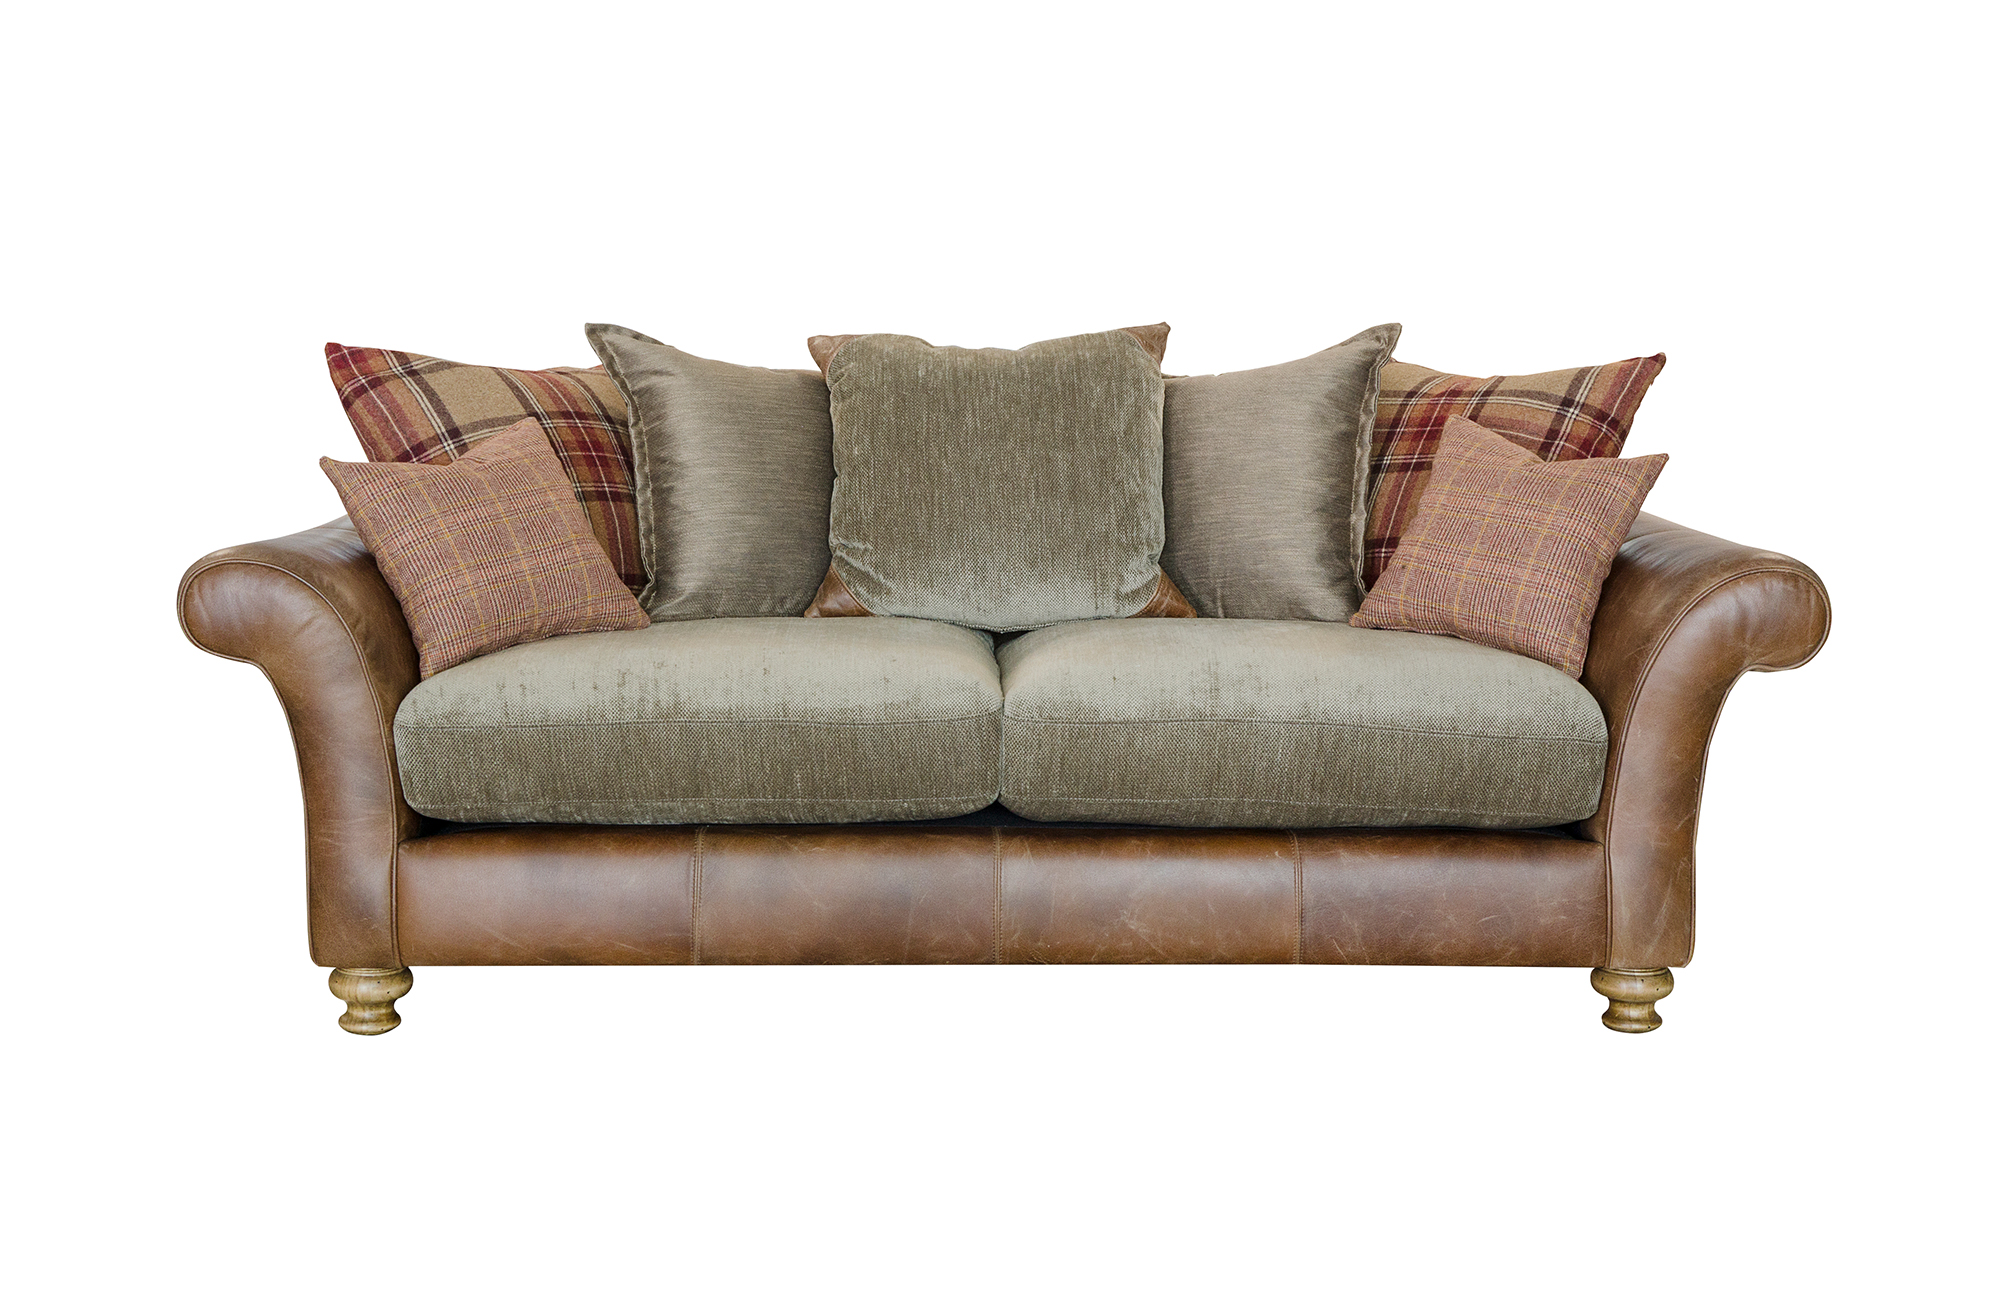 Lawrence 3 Seater Sofa Alexander And James